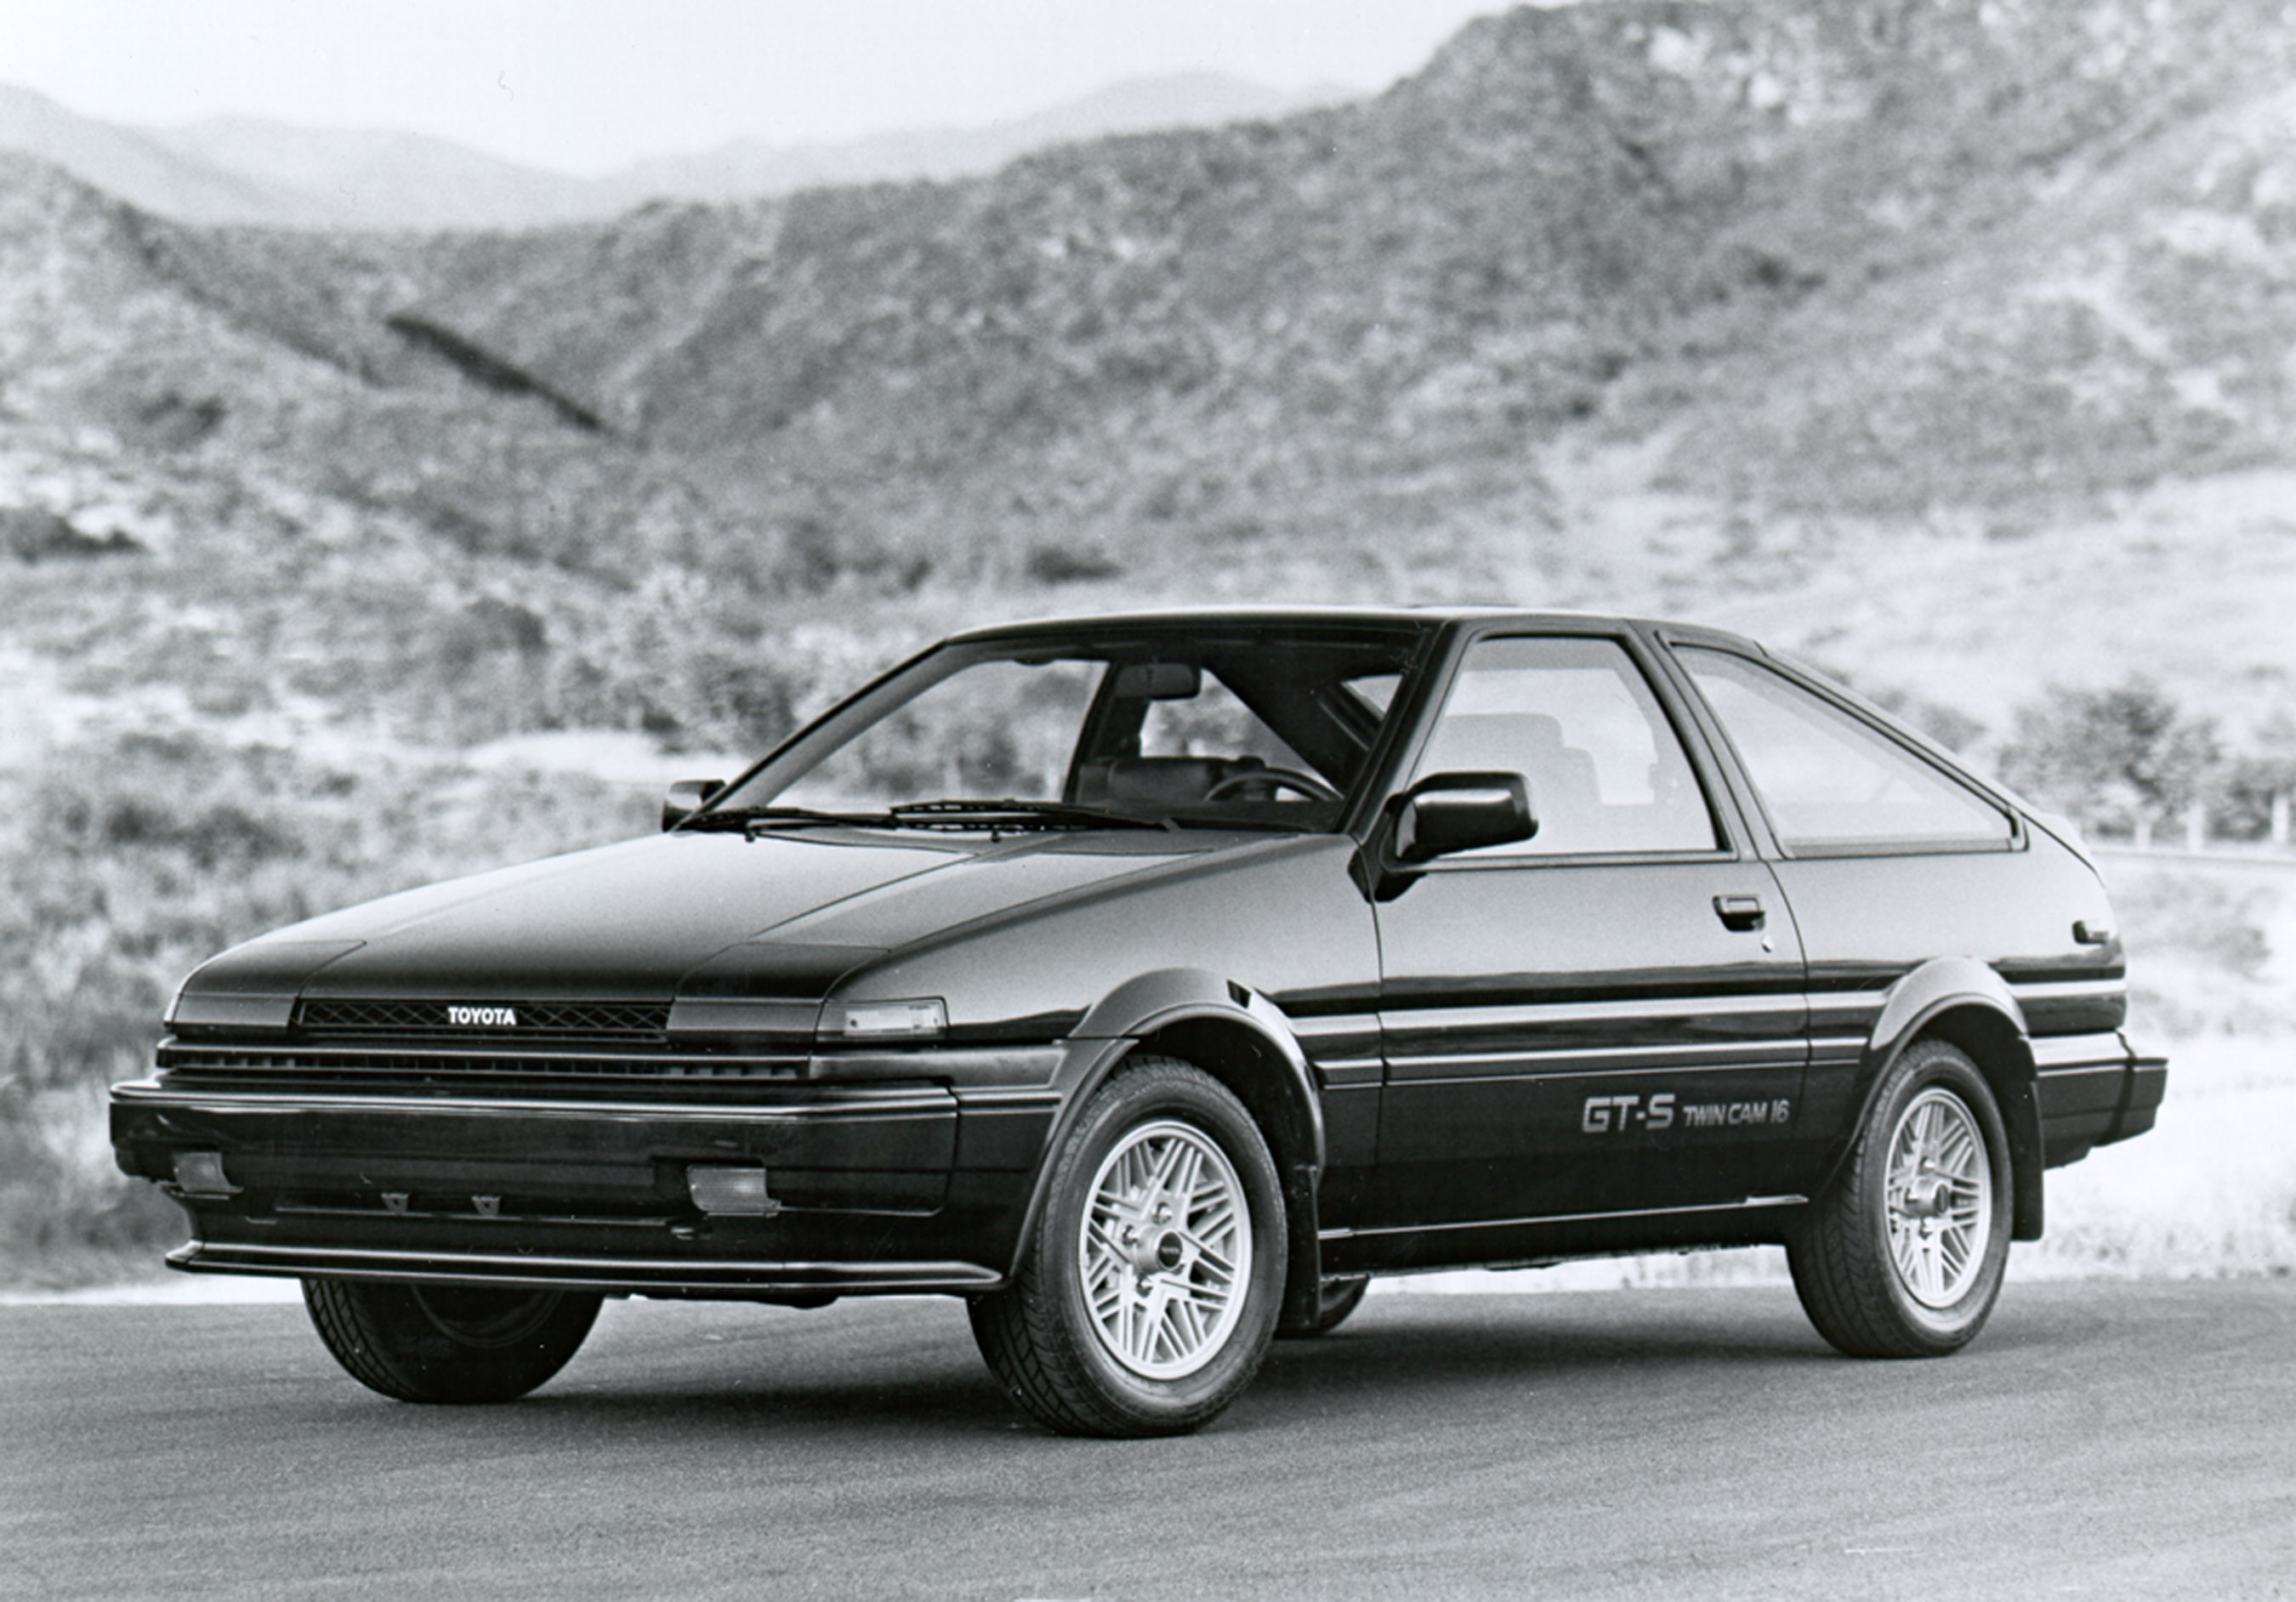 Best Used Cars Under 5000 Beautiful 12 Inexpensive Project Cars for Gearheads